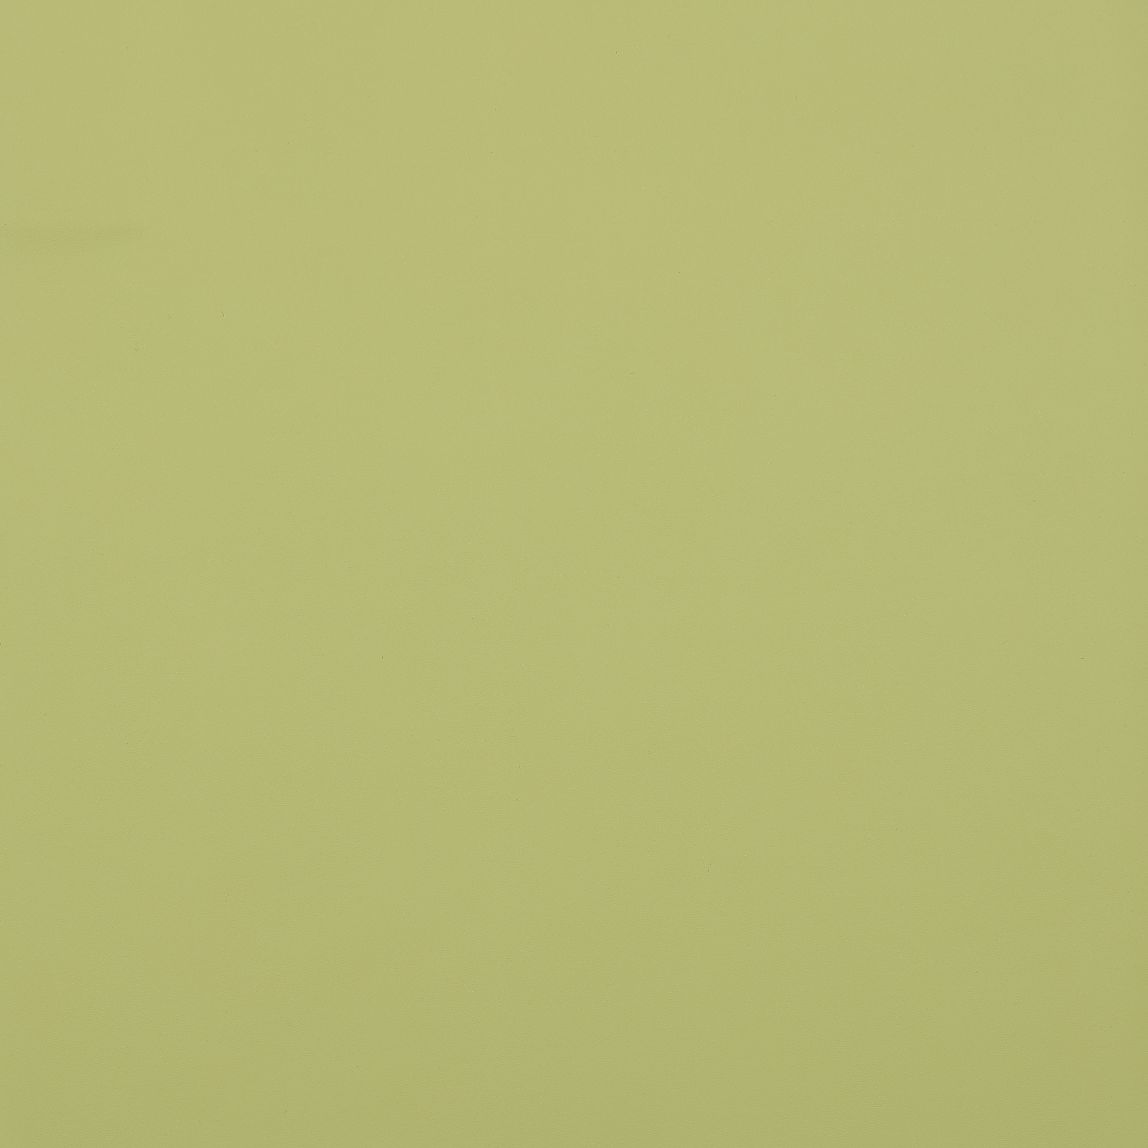 Apt Chartreuse Swatch